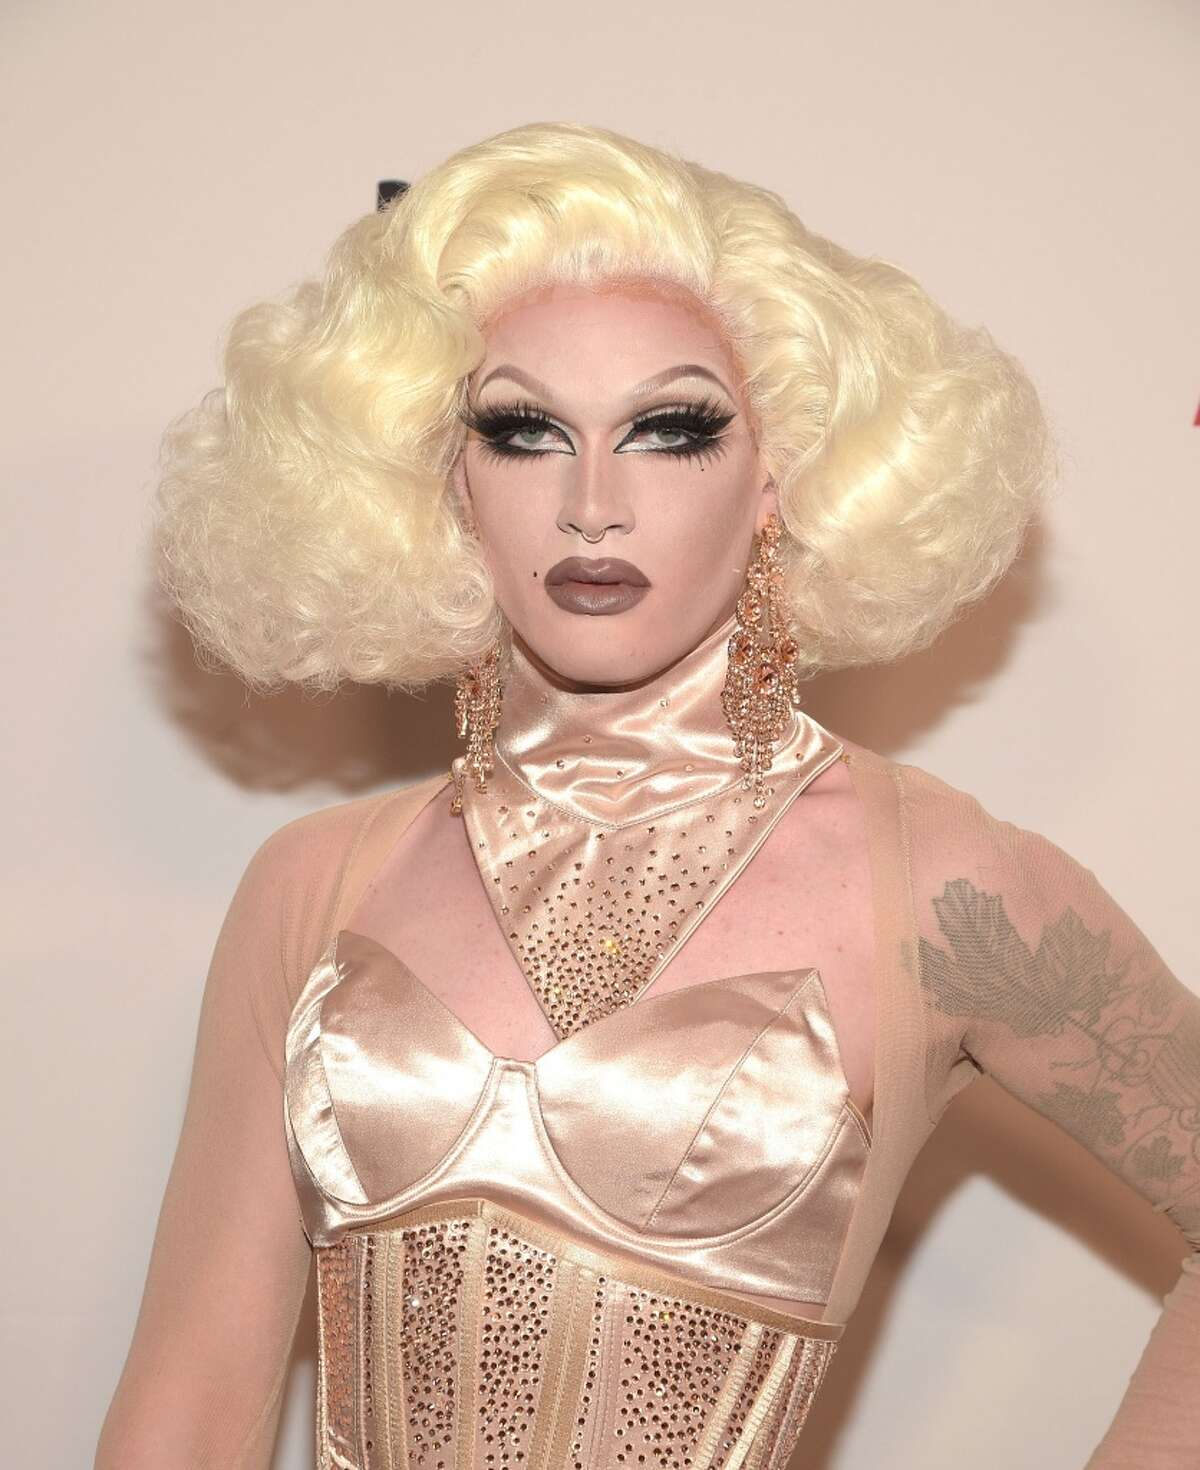 Click through to see the 2016 Houston Pride Festival performers - June 25 in downtown Houston! Pearl was a RuPaul's Drag Race Season 7 favorite and finished in the top 3.